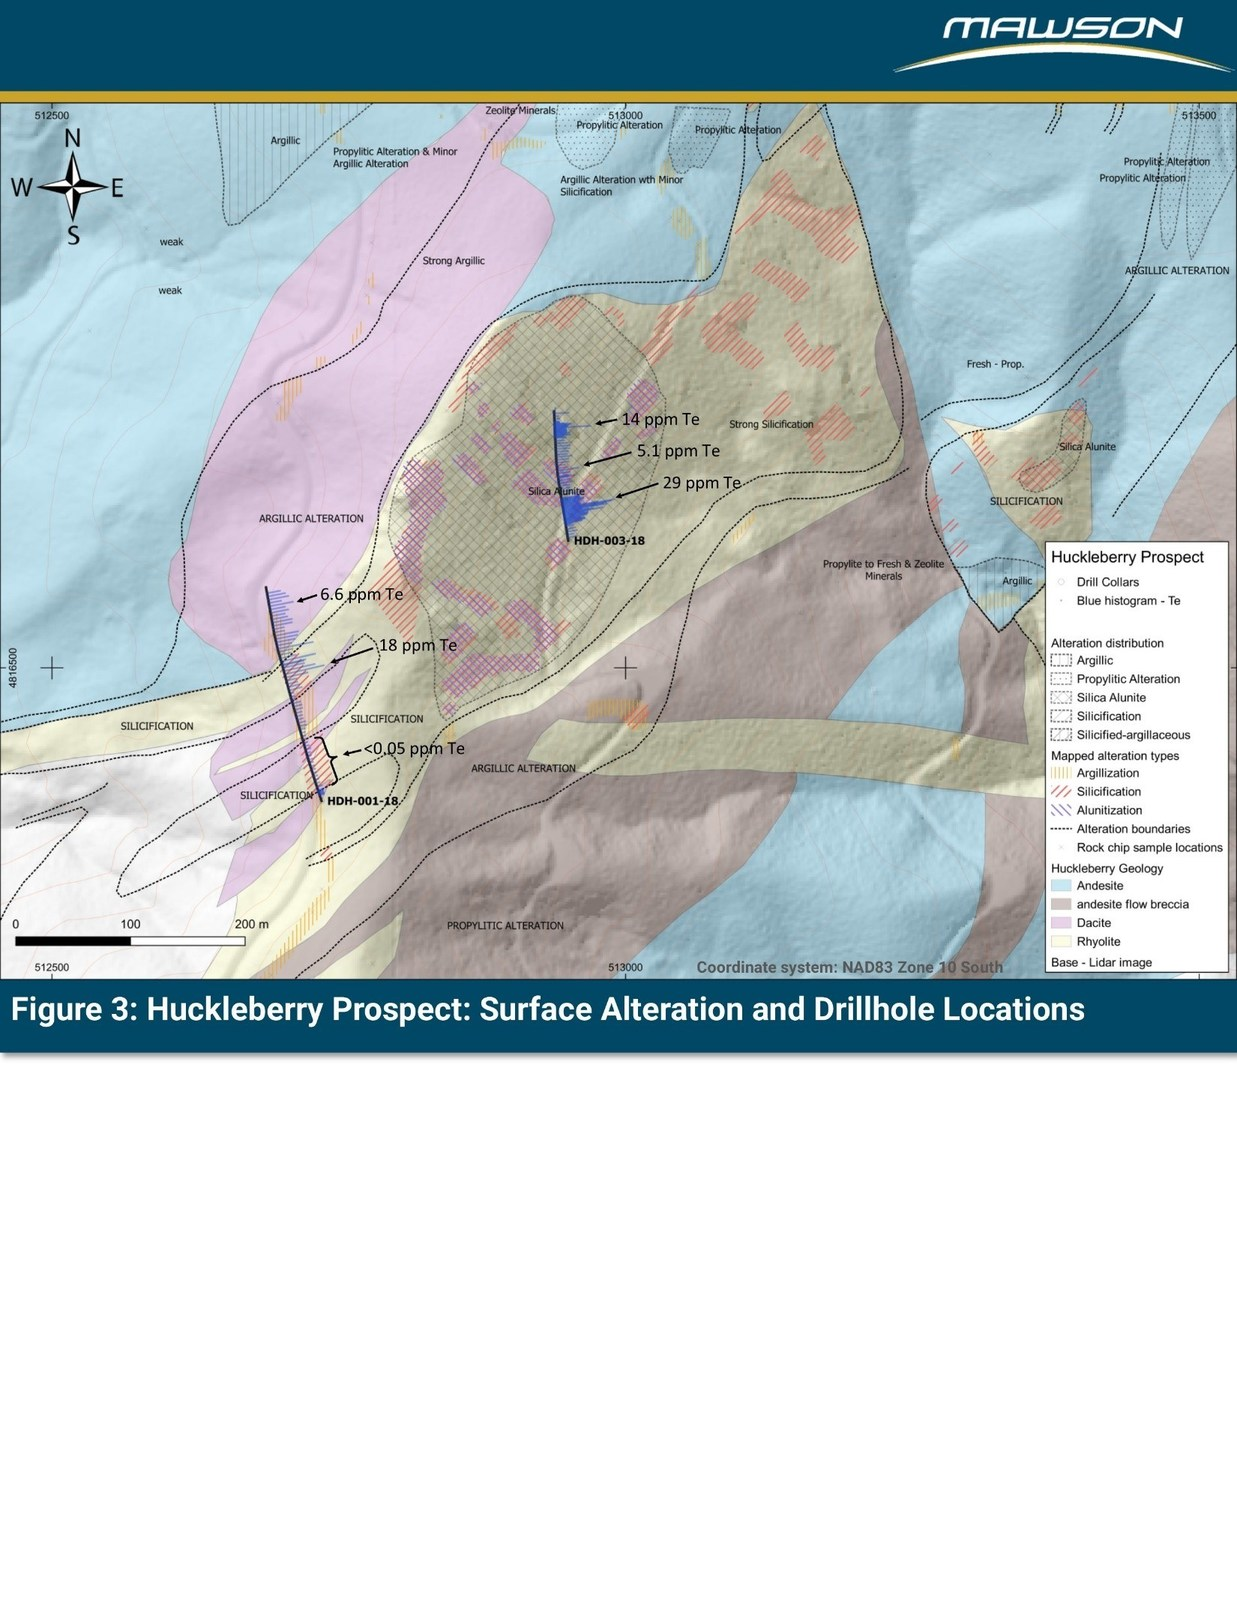 Figure 3: Huckleberry Prospect: Surface Alteration and Drillhole Locations